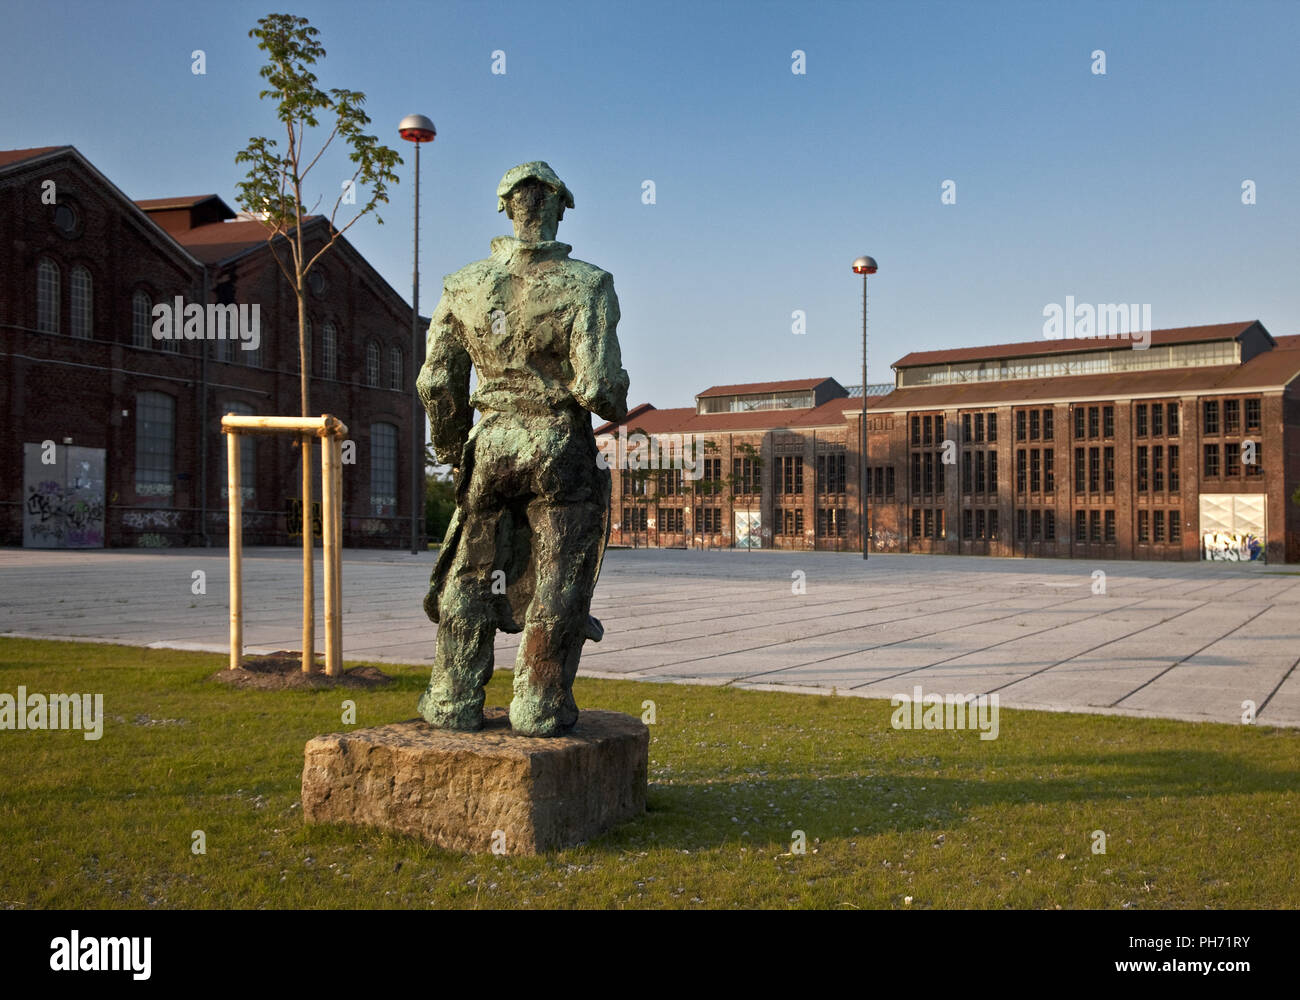 Miners sculpture, Phoenix West, Dortmund, Germany. - Stock Image